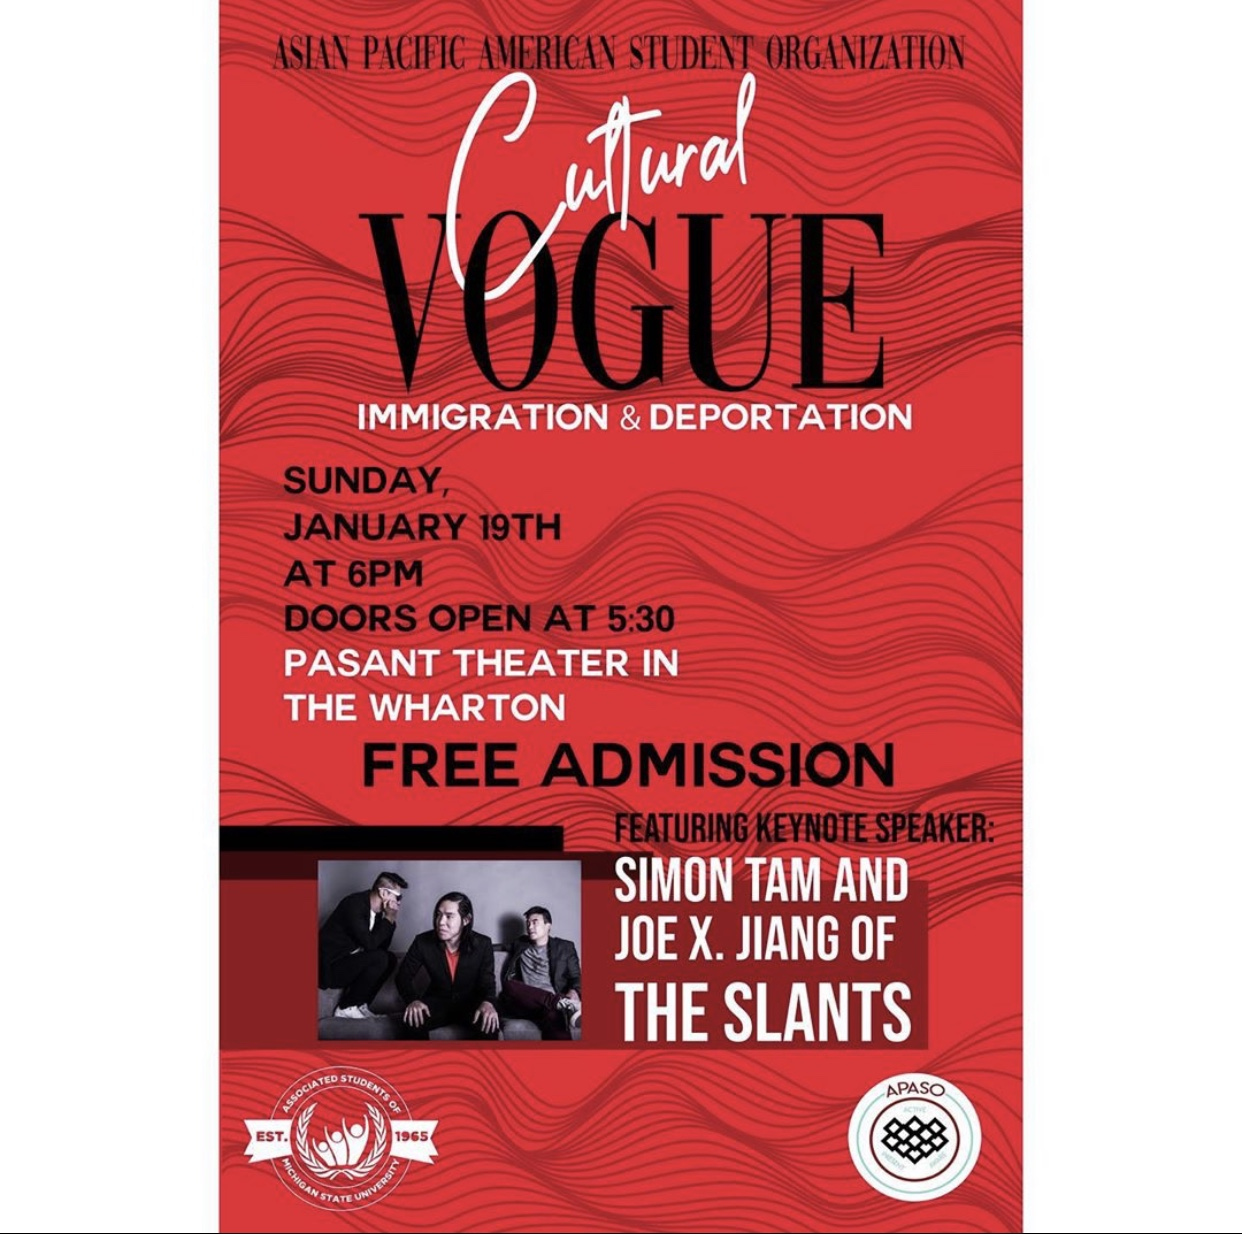 Cultural VOGUE Immigration and Deportation @ Pasant Theater in The Wharton